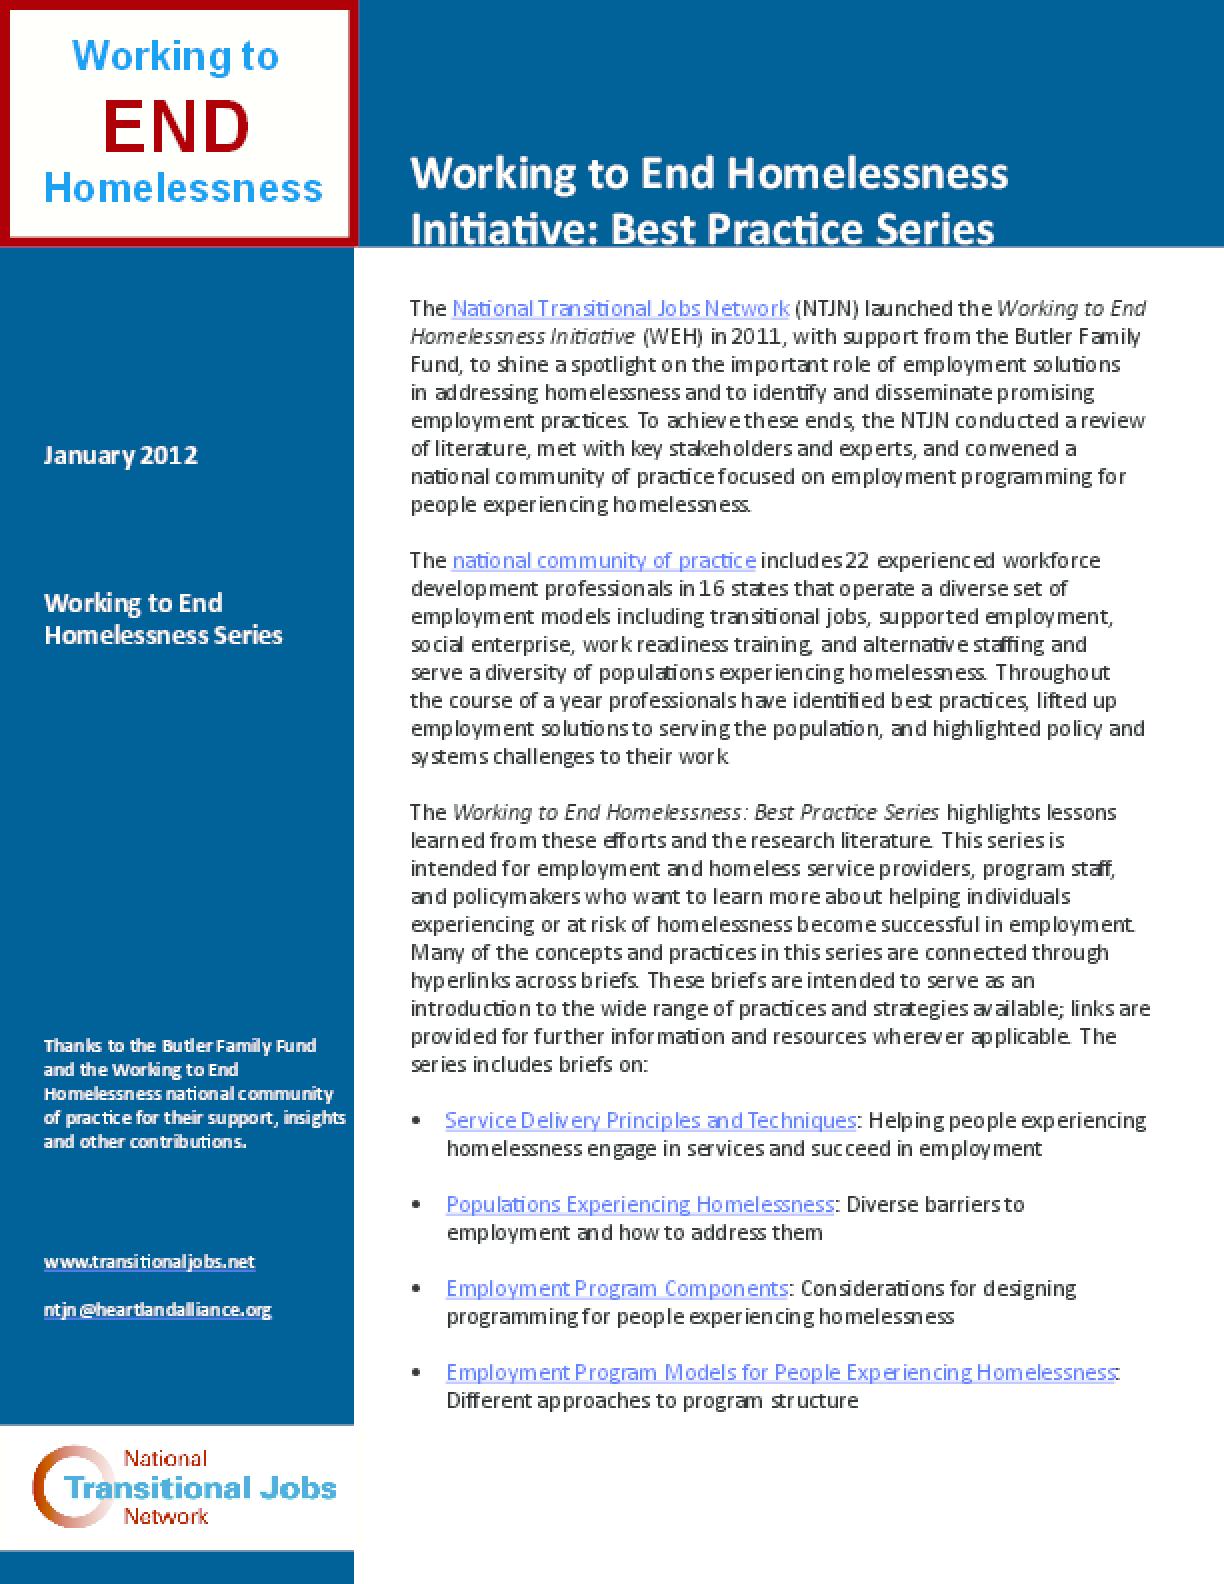 Working to End Homelessness Initiative: Best Practice Series